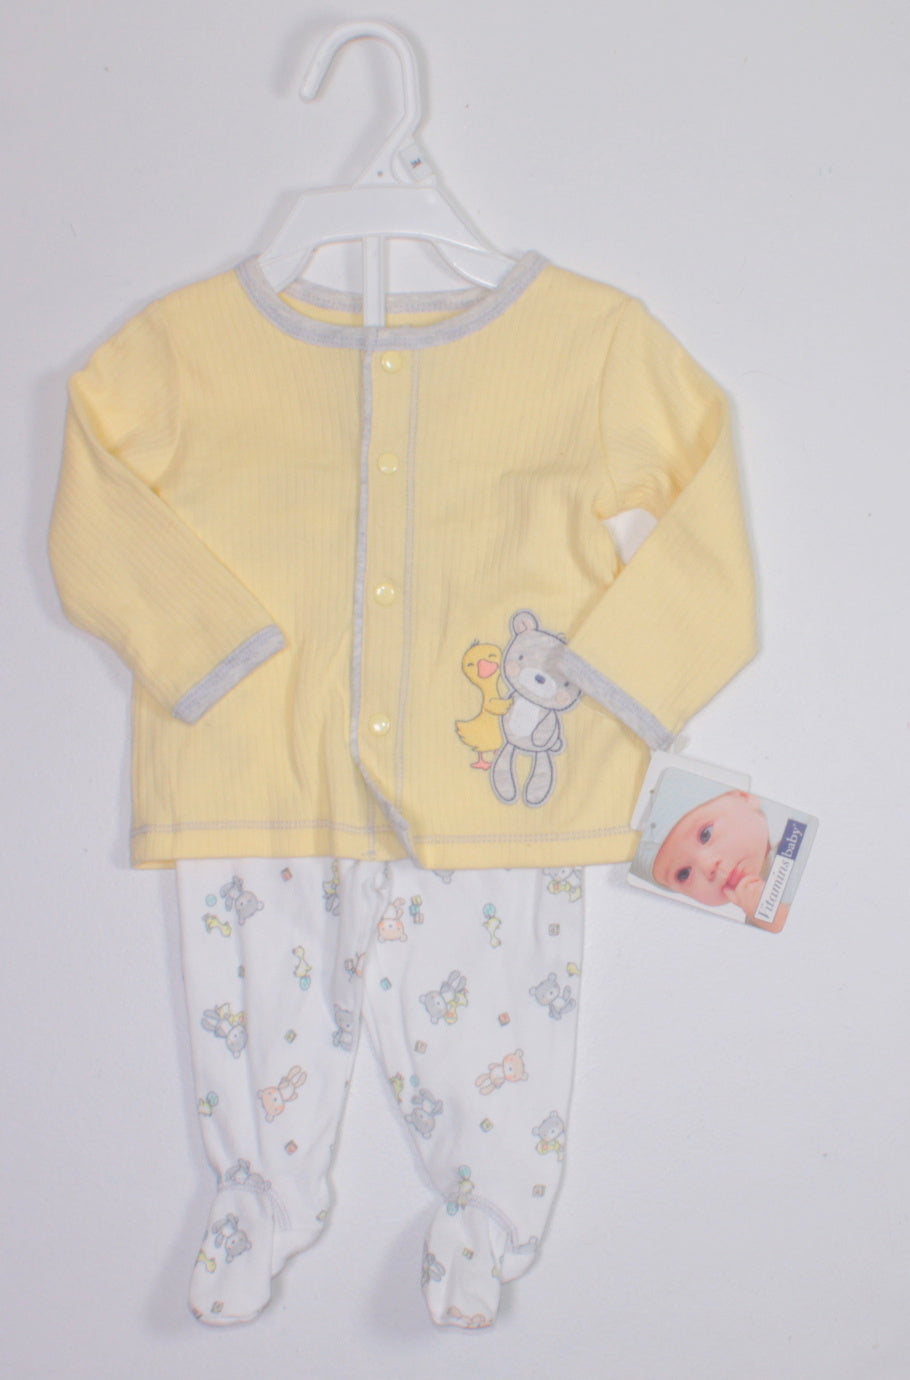 6702e1d7f771 VITAMINS BABY BEAR OUTFIT 3M NEW! - Betty s Consignment